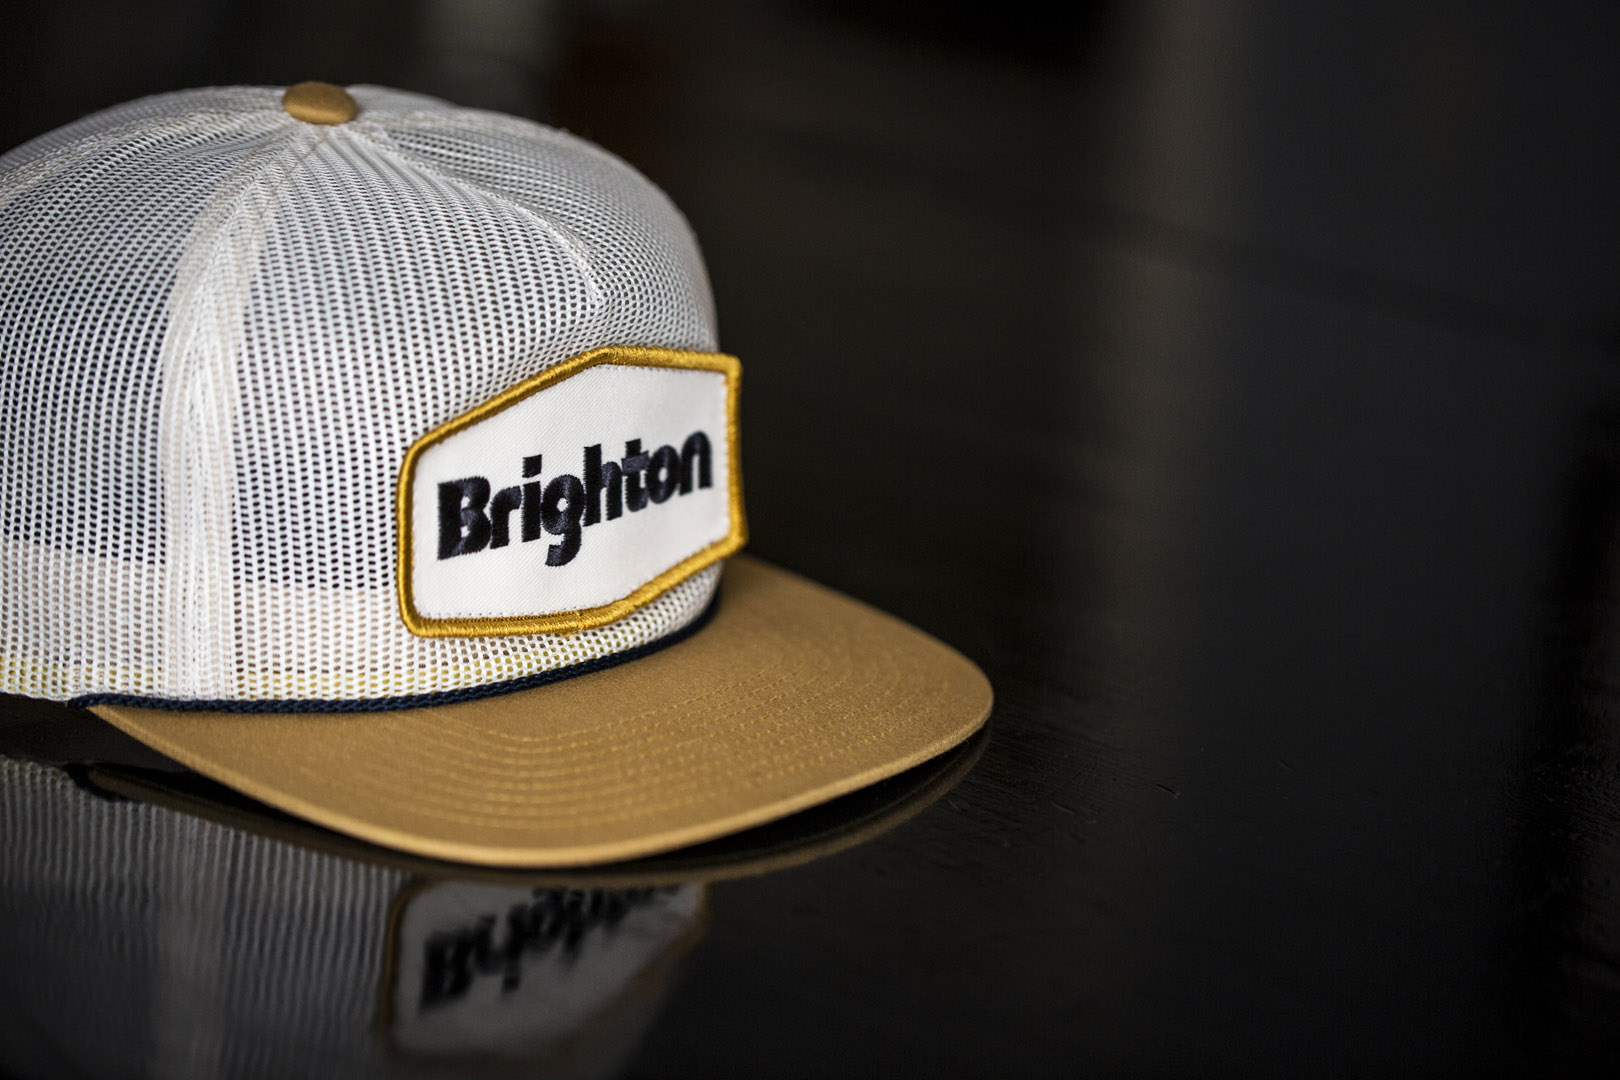 C54-MM Full Mesh Trucker Hat - Brighton Resort Embroidered Patch